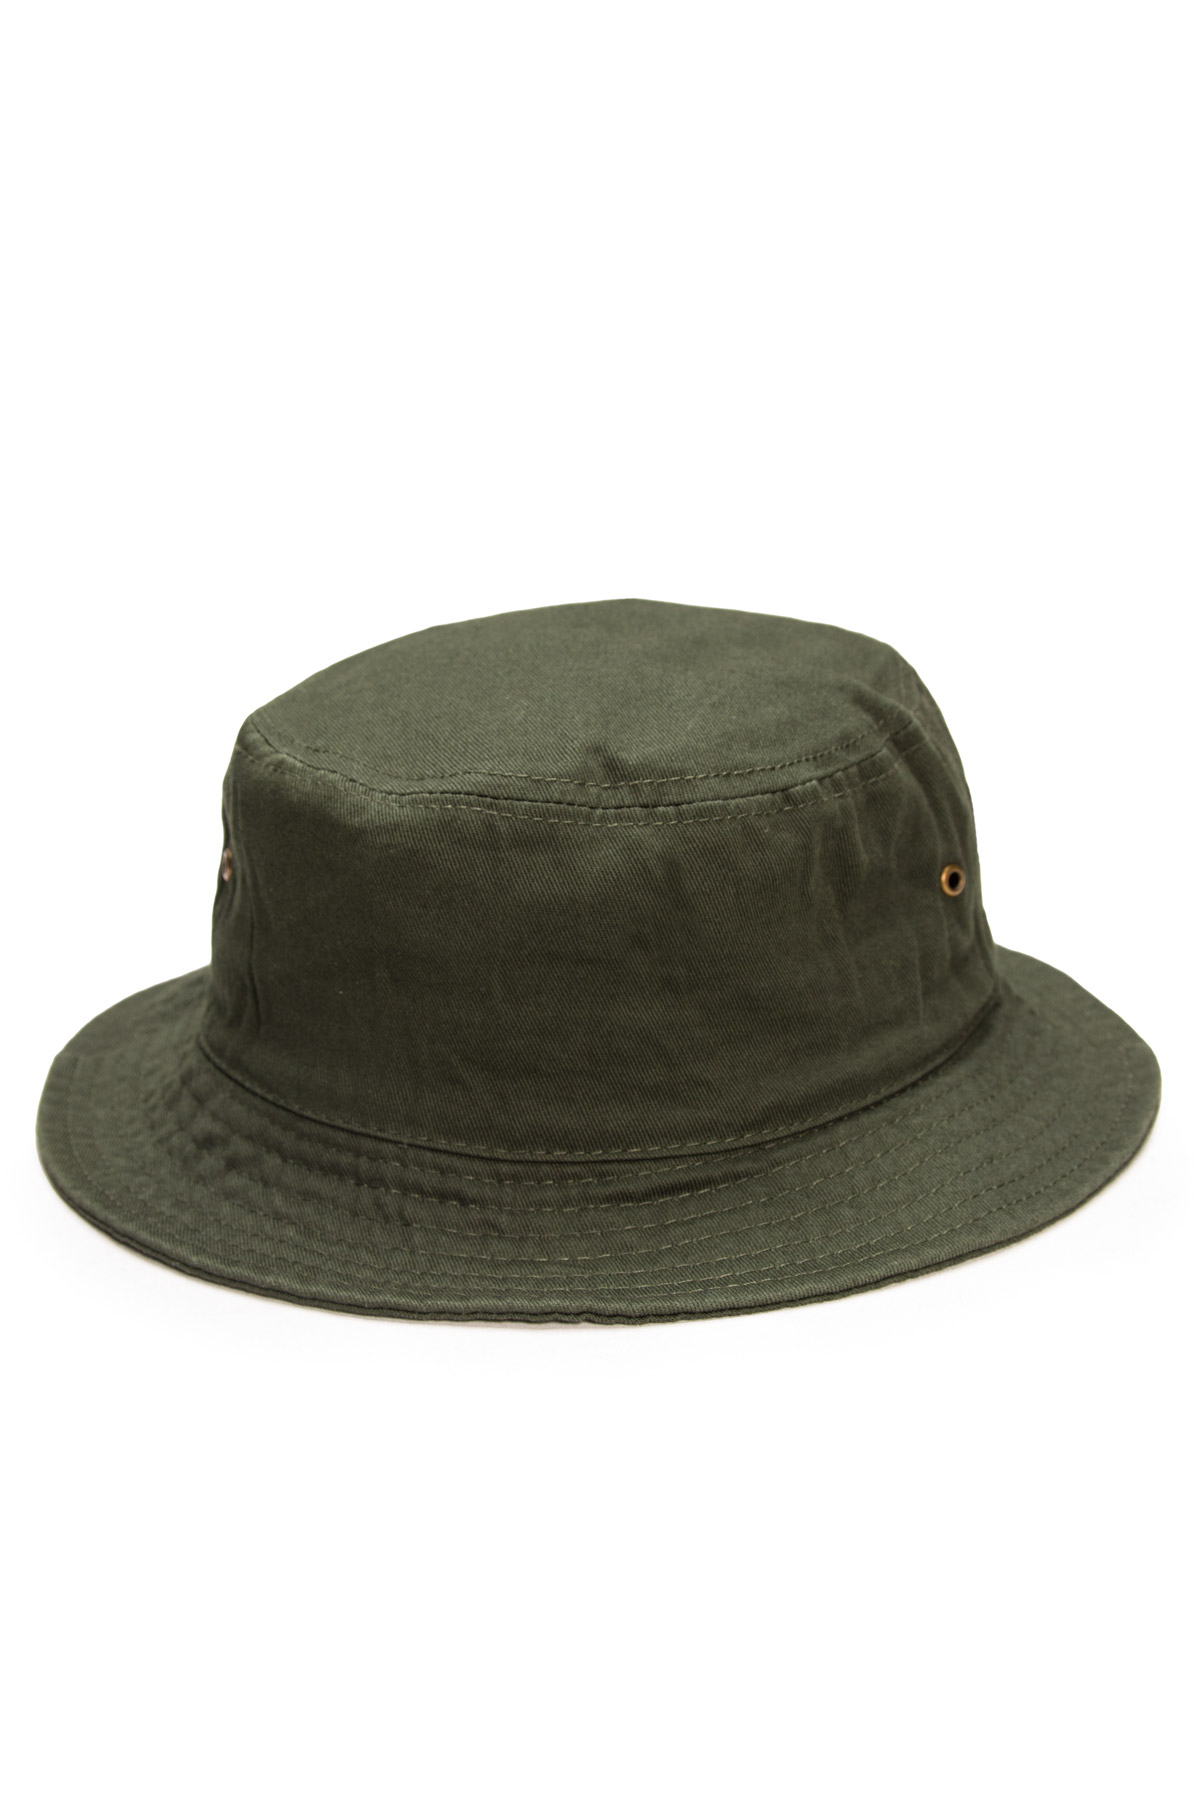 hunter bucket hat